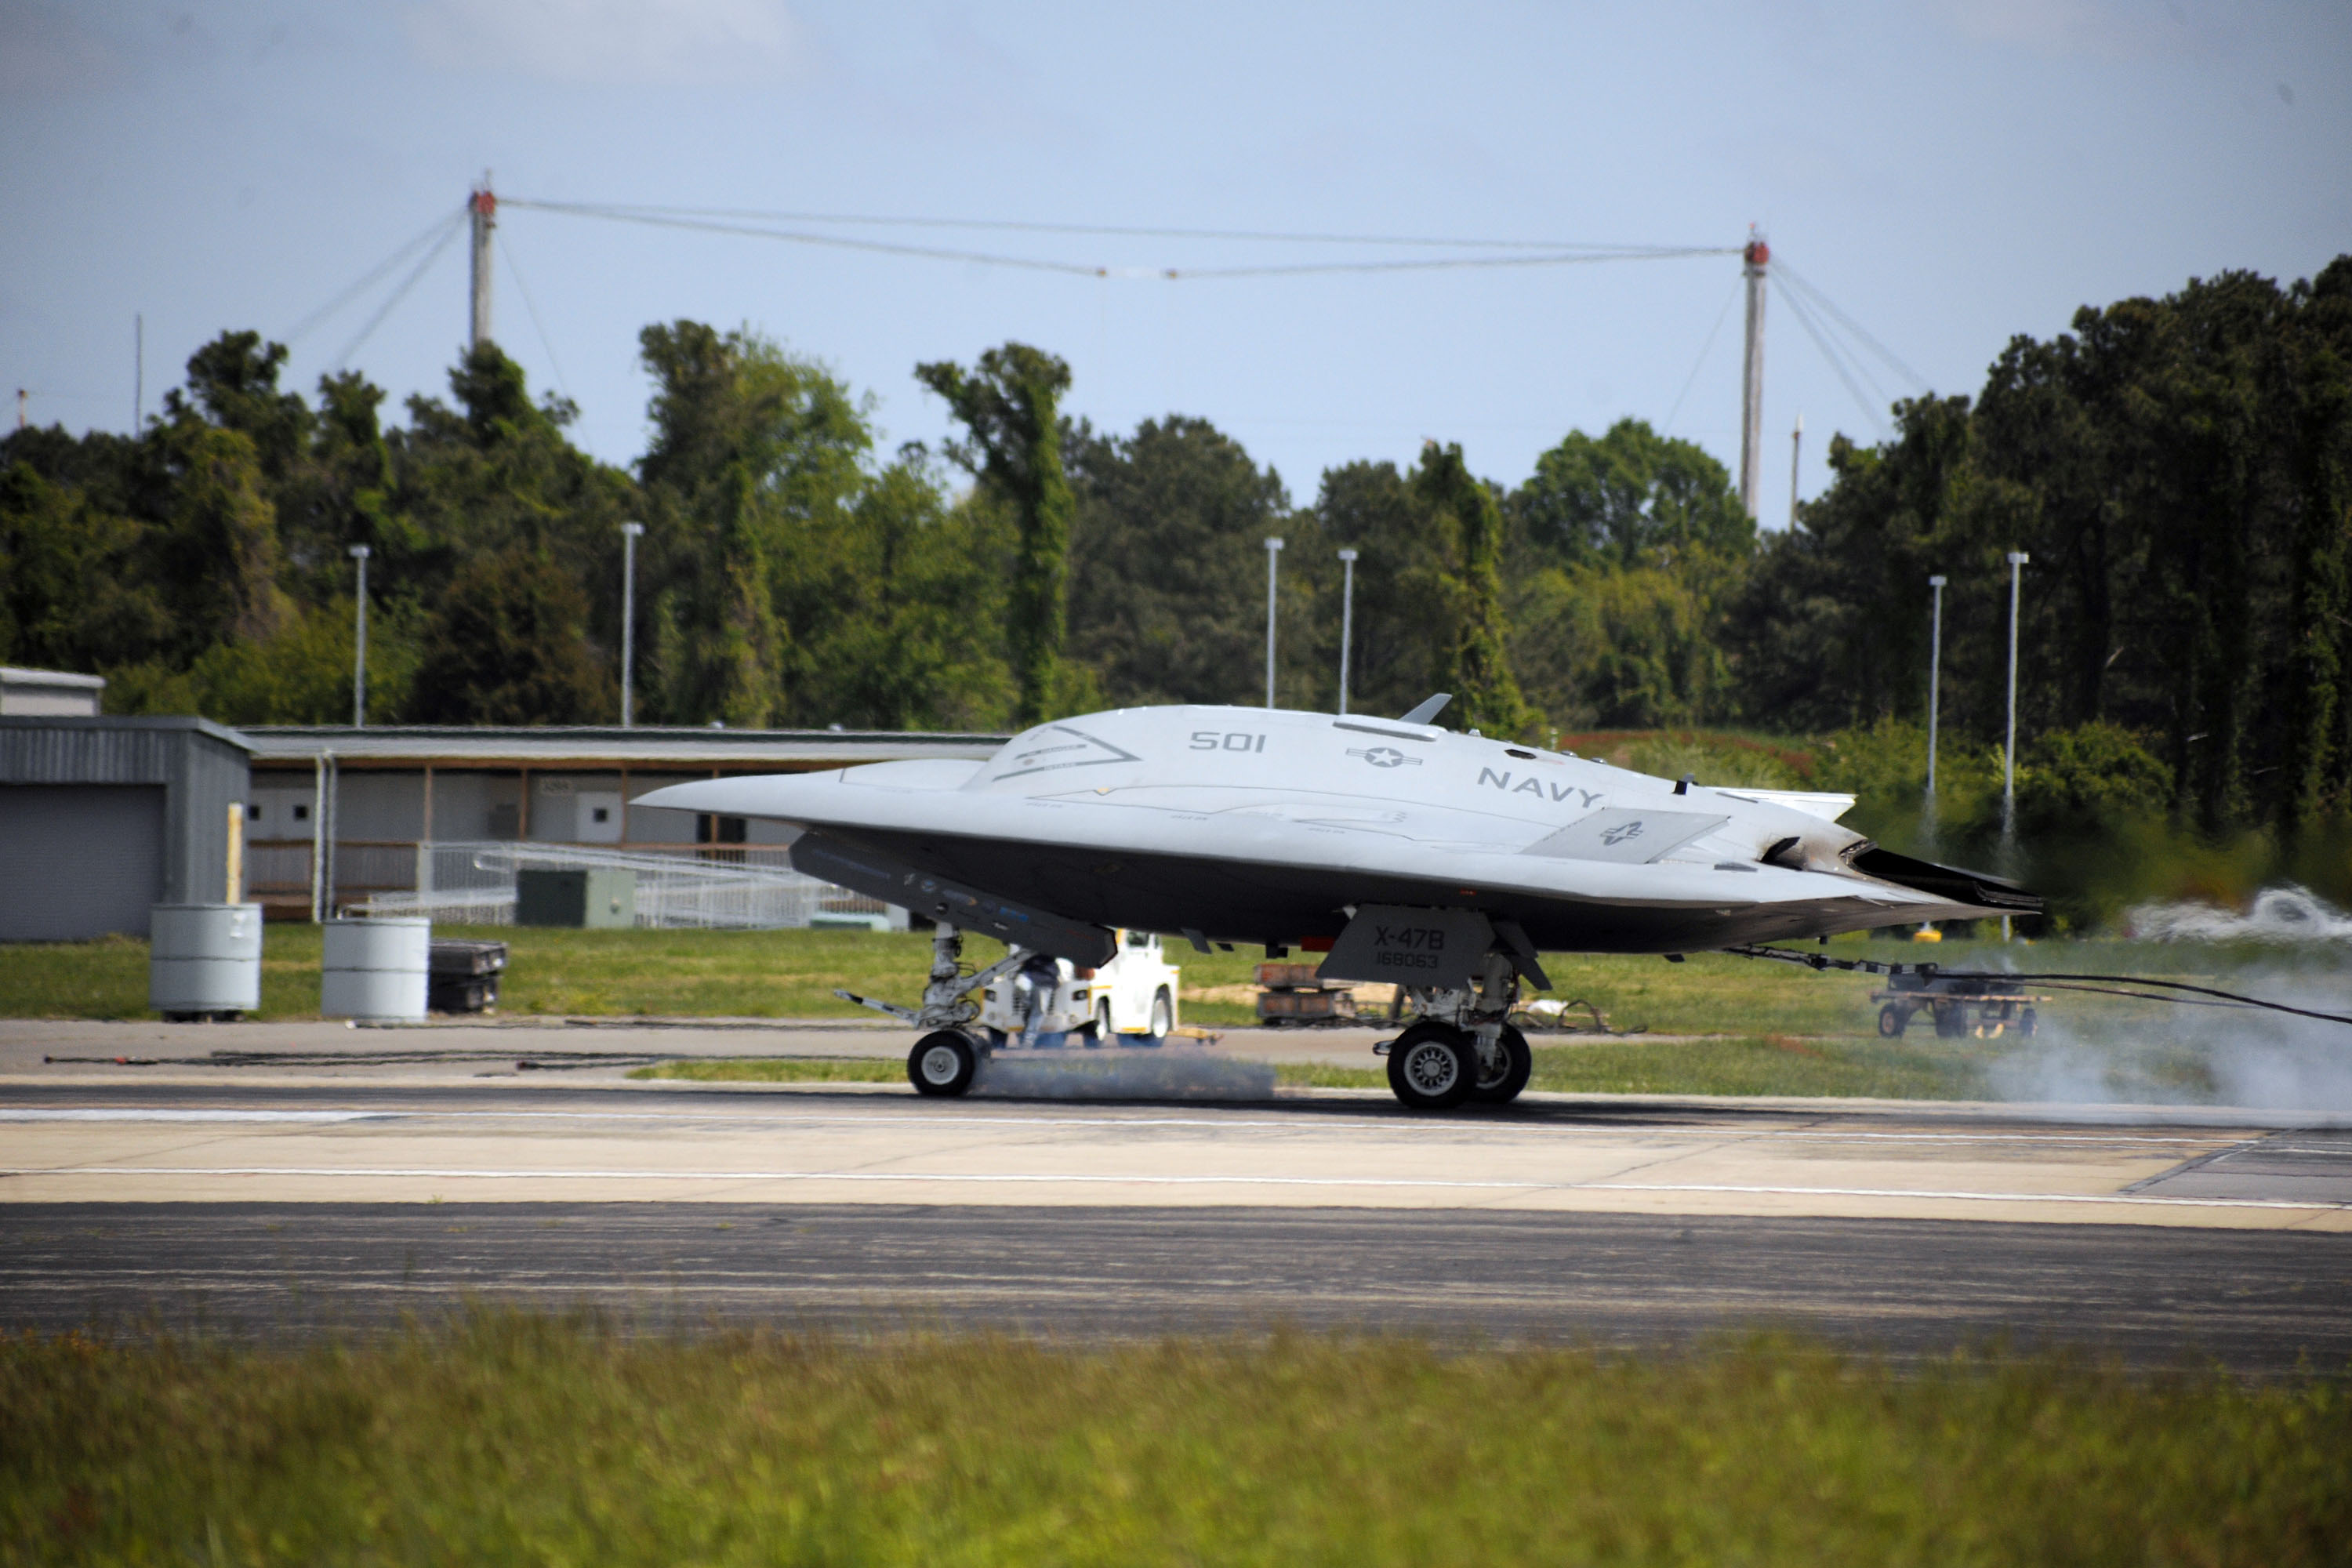 x-47b, carrier, landing, UAV, drone, airplane, aircraft, spy, stealth